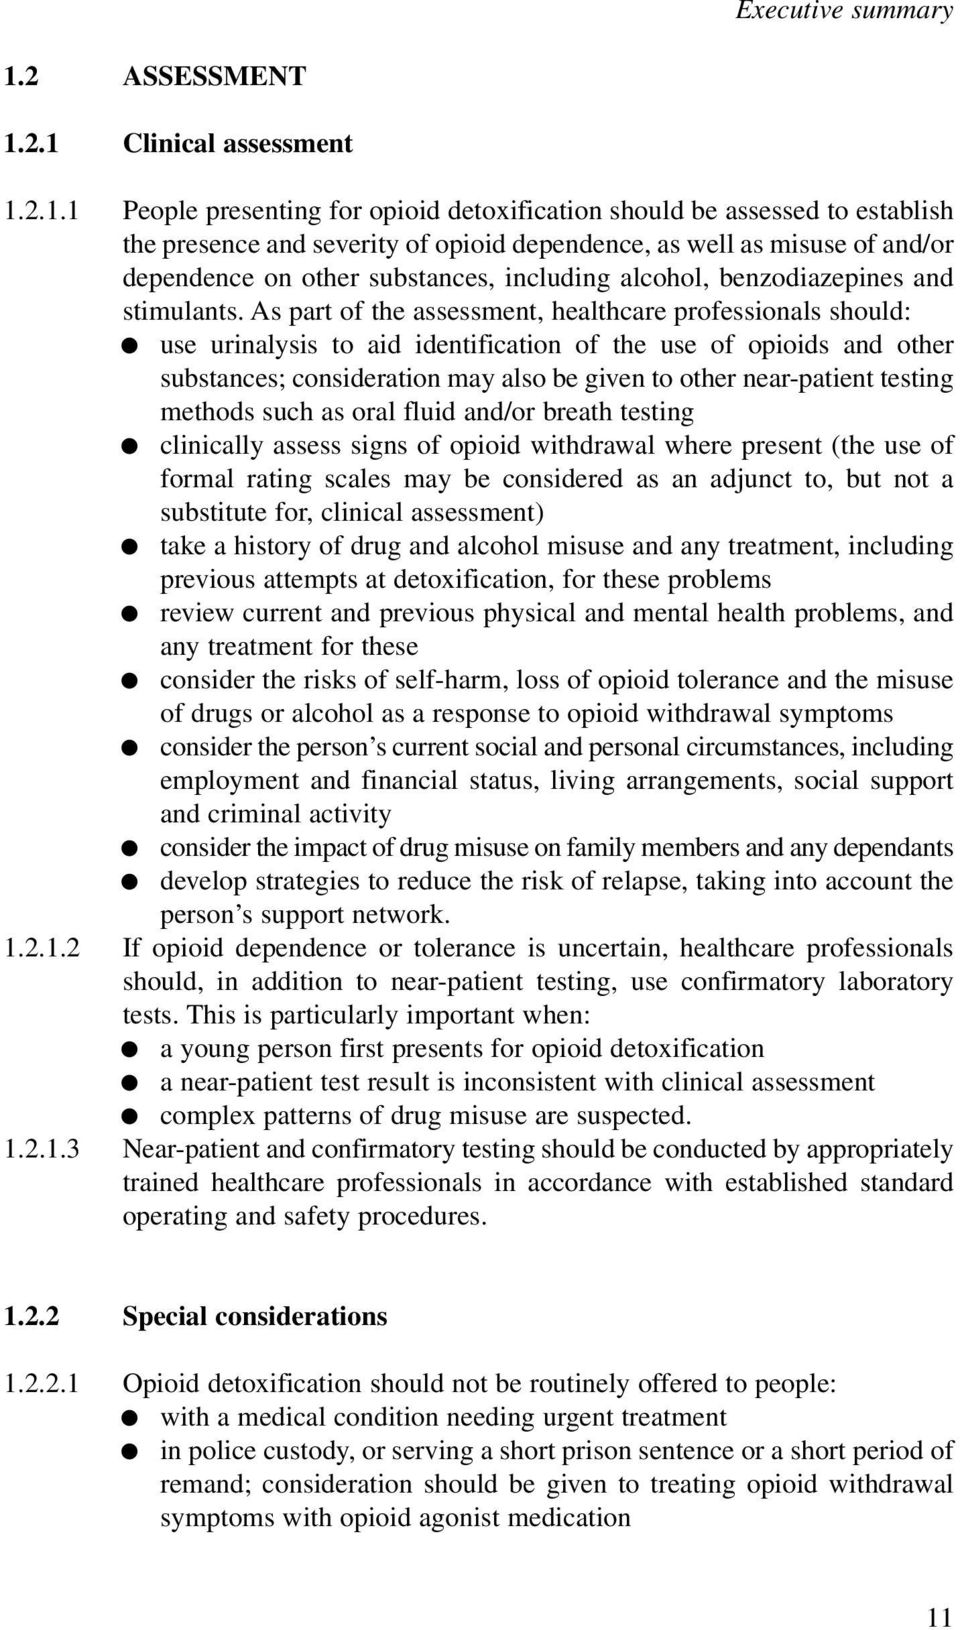 2.1 Clinical assessment 1.2.1.1 People presenting for opioid detoxification should be assessed to establish the presence and severity of opioid dependence, as well as misuse of and/or dependence on